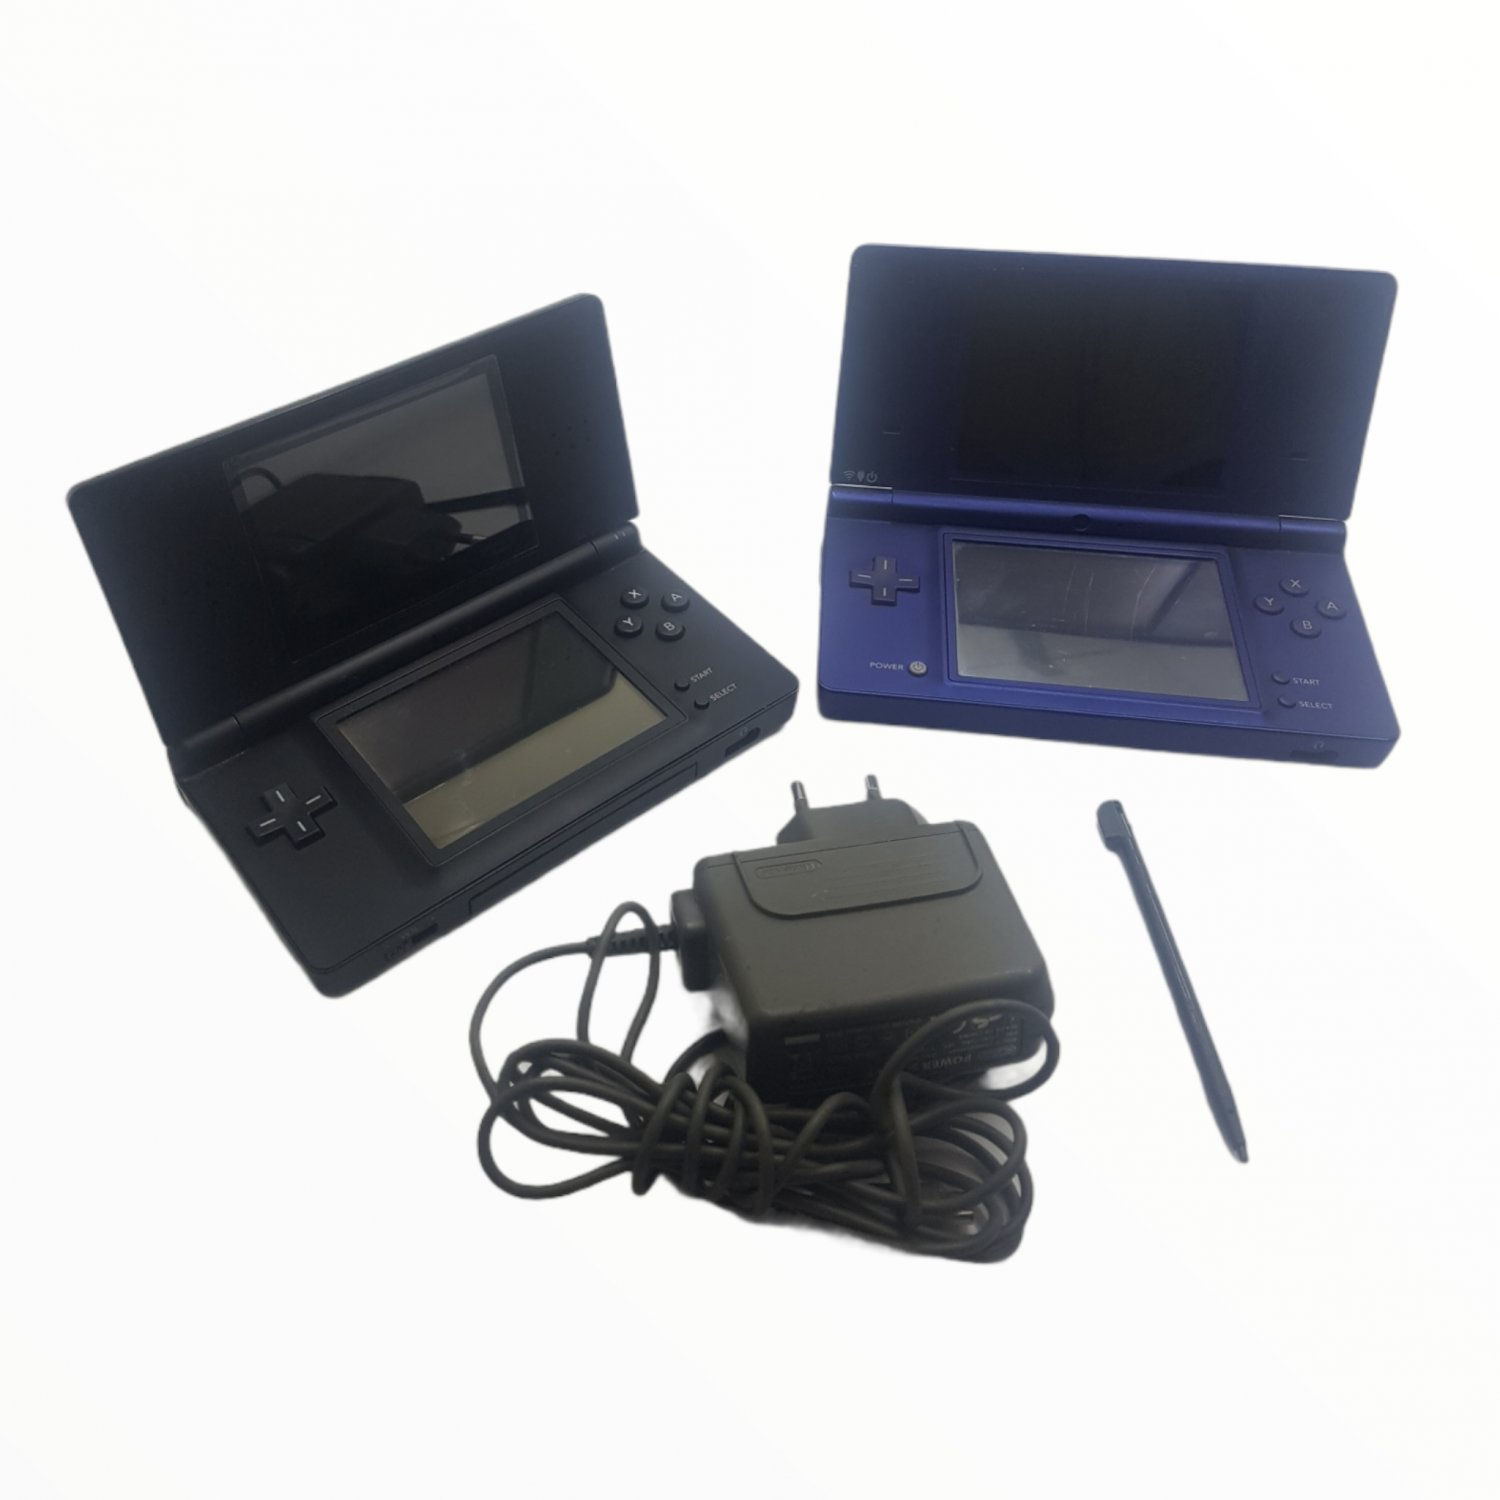 2 Nintendo DS handheld with charger